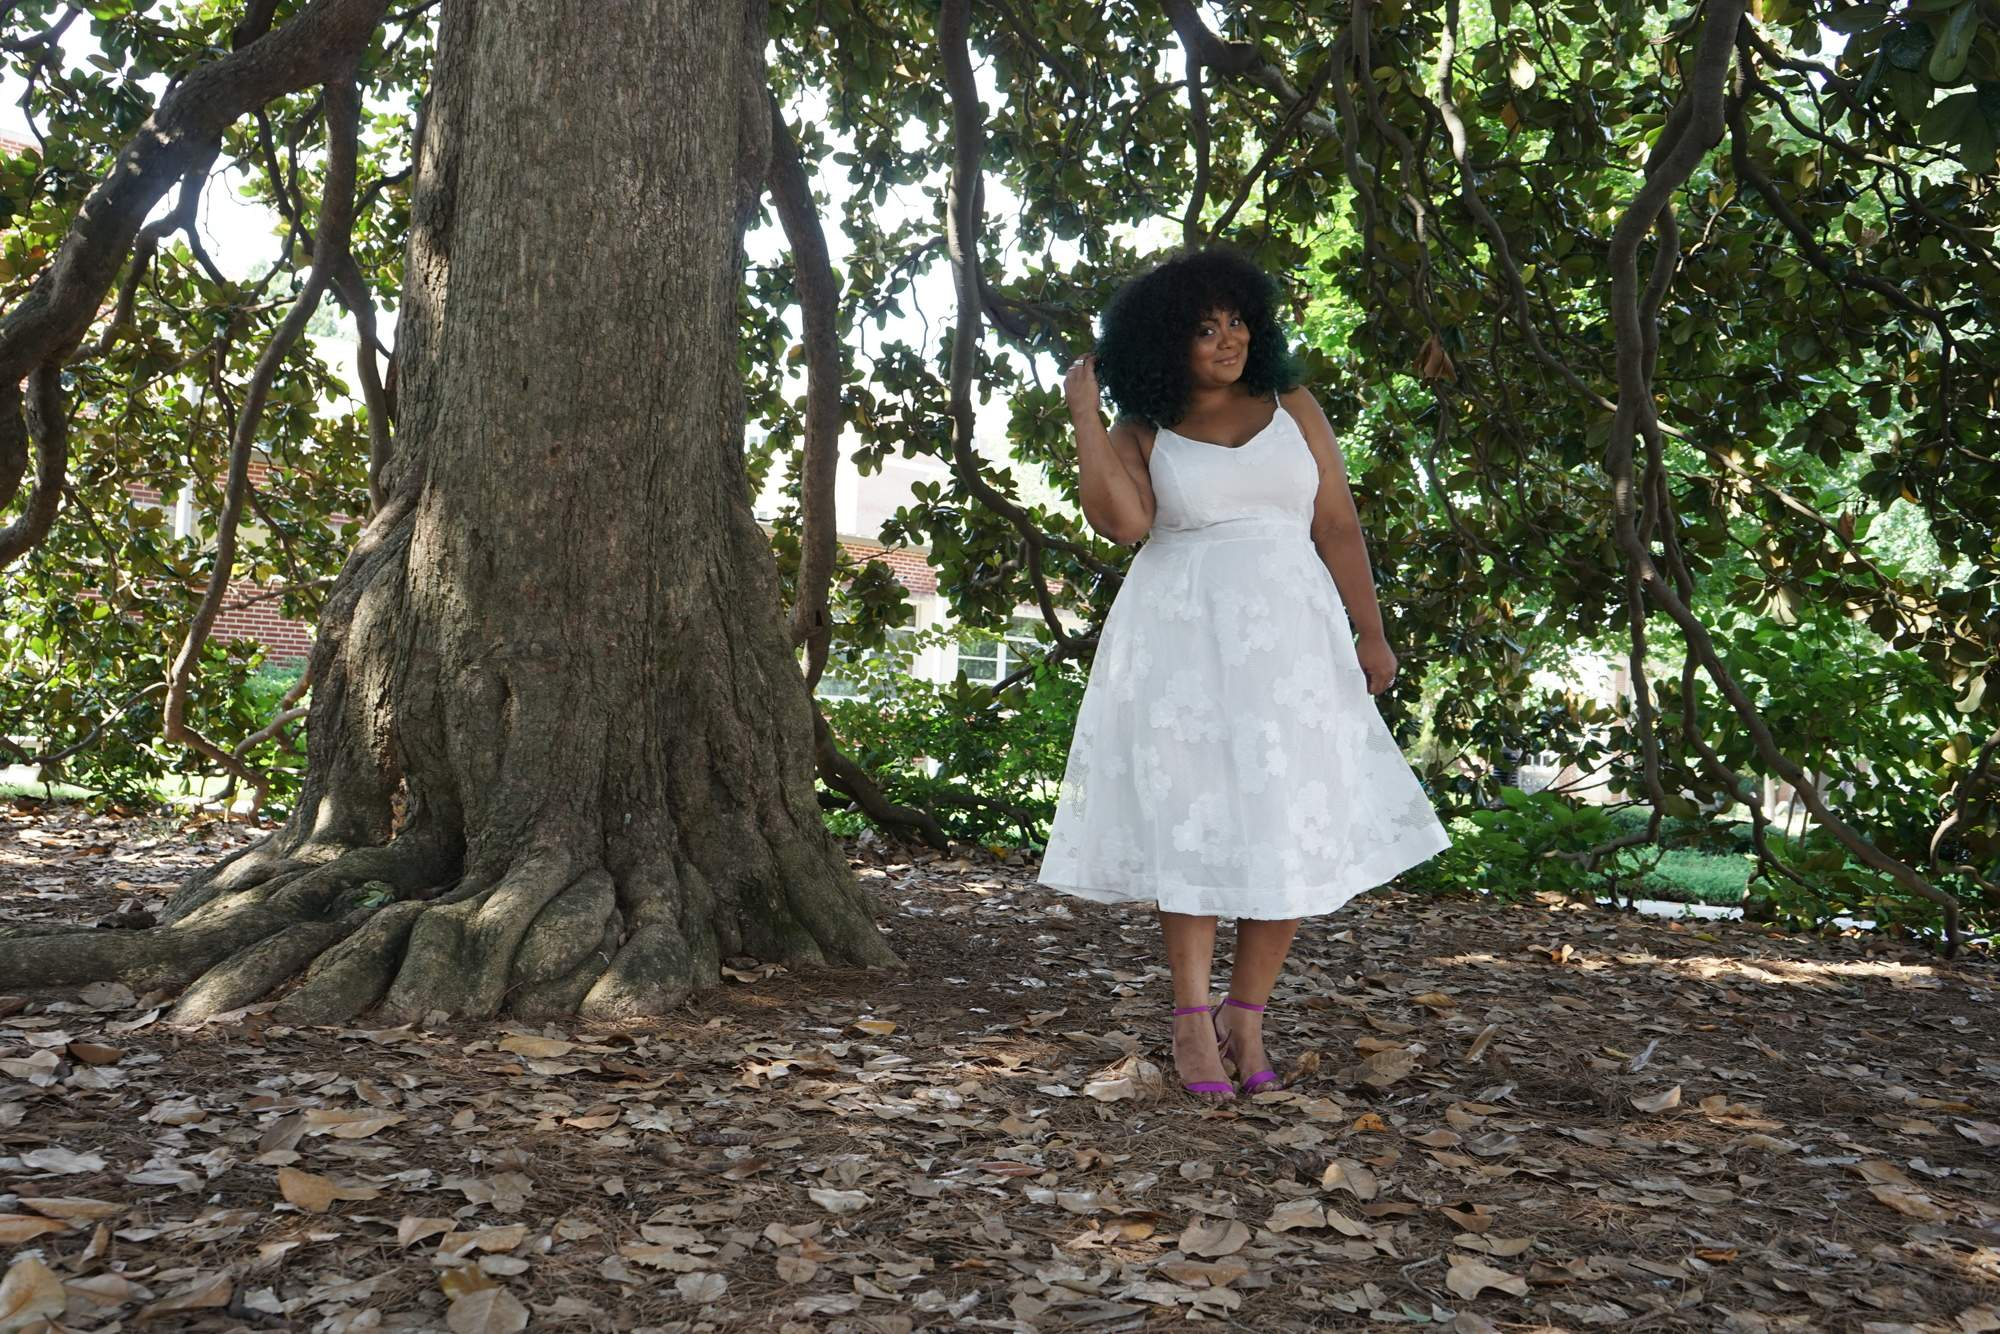 Marie Denee- The Curvy Fashionista in city chic plus size white dress